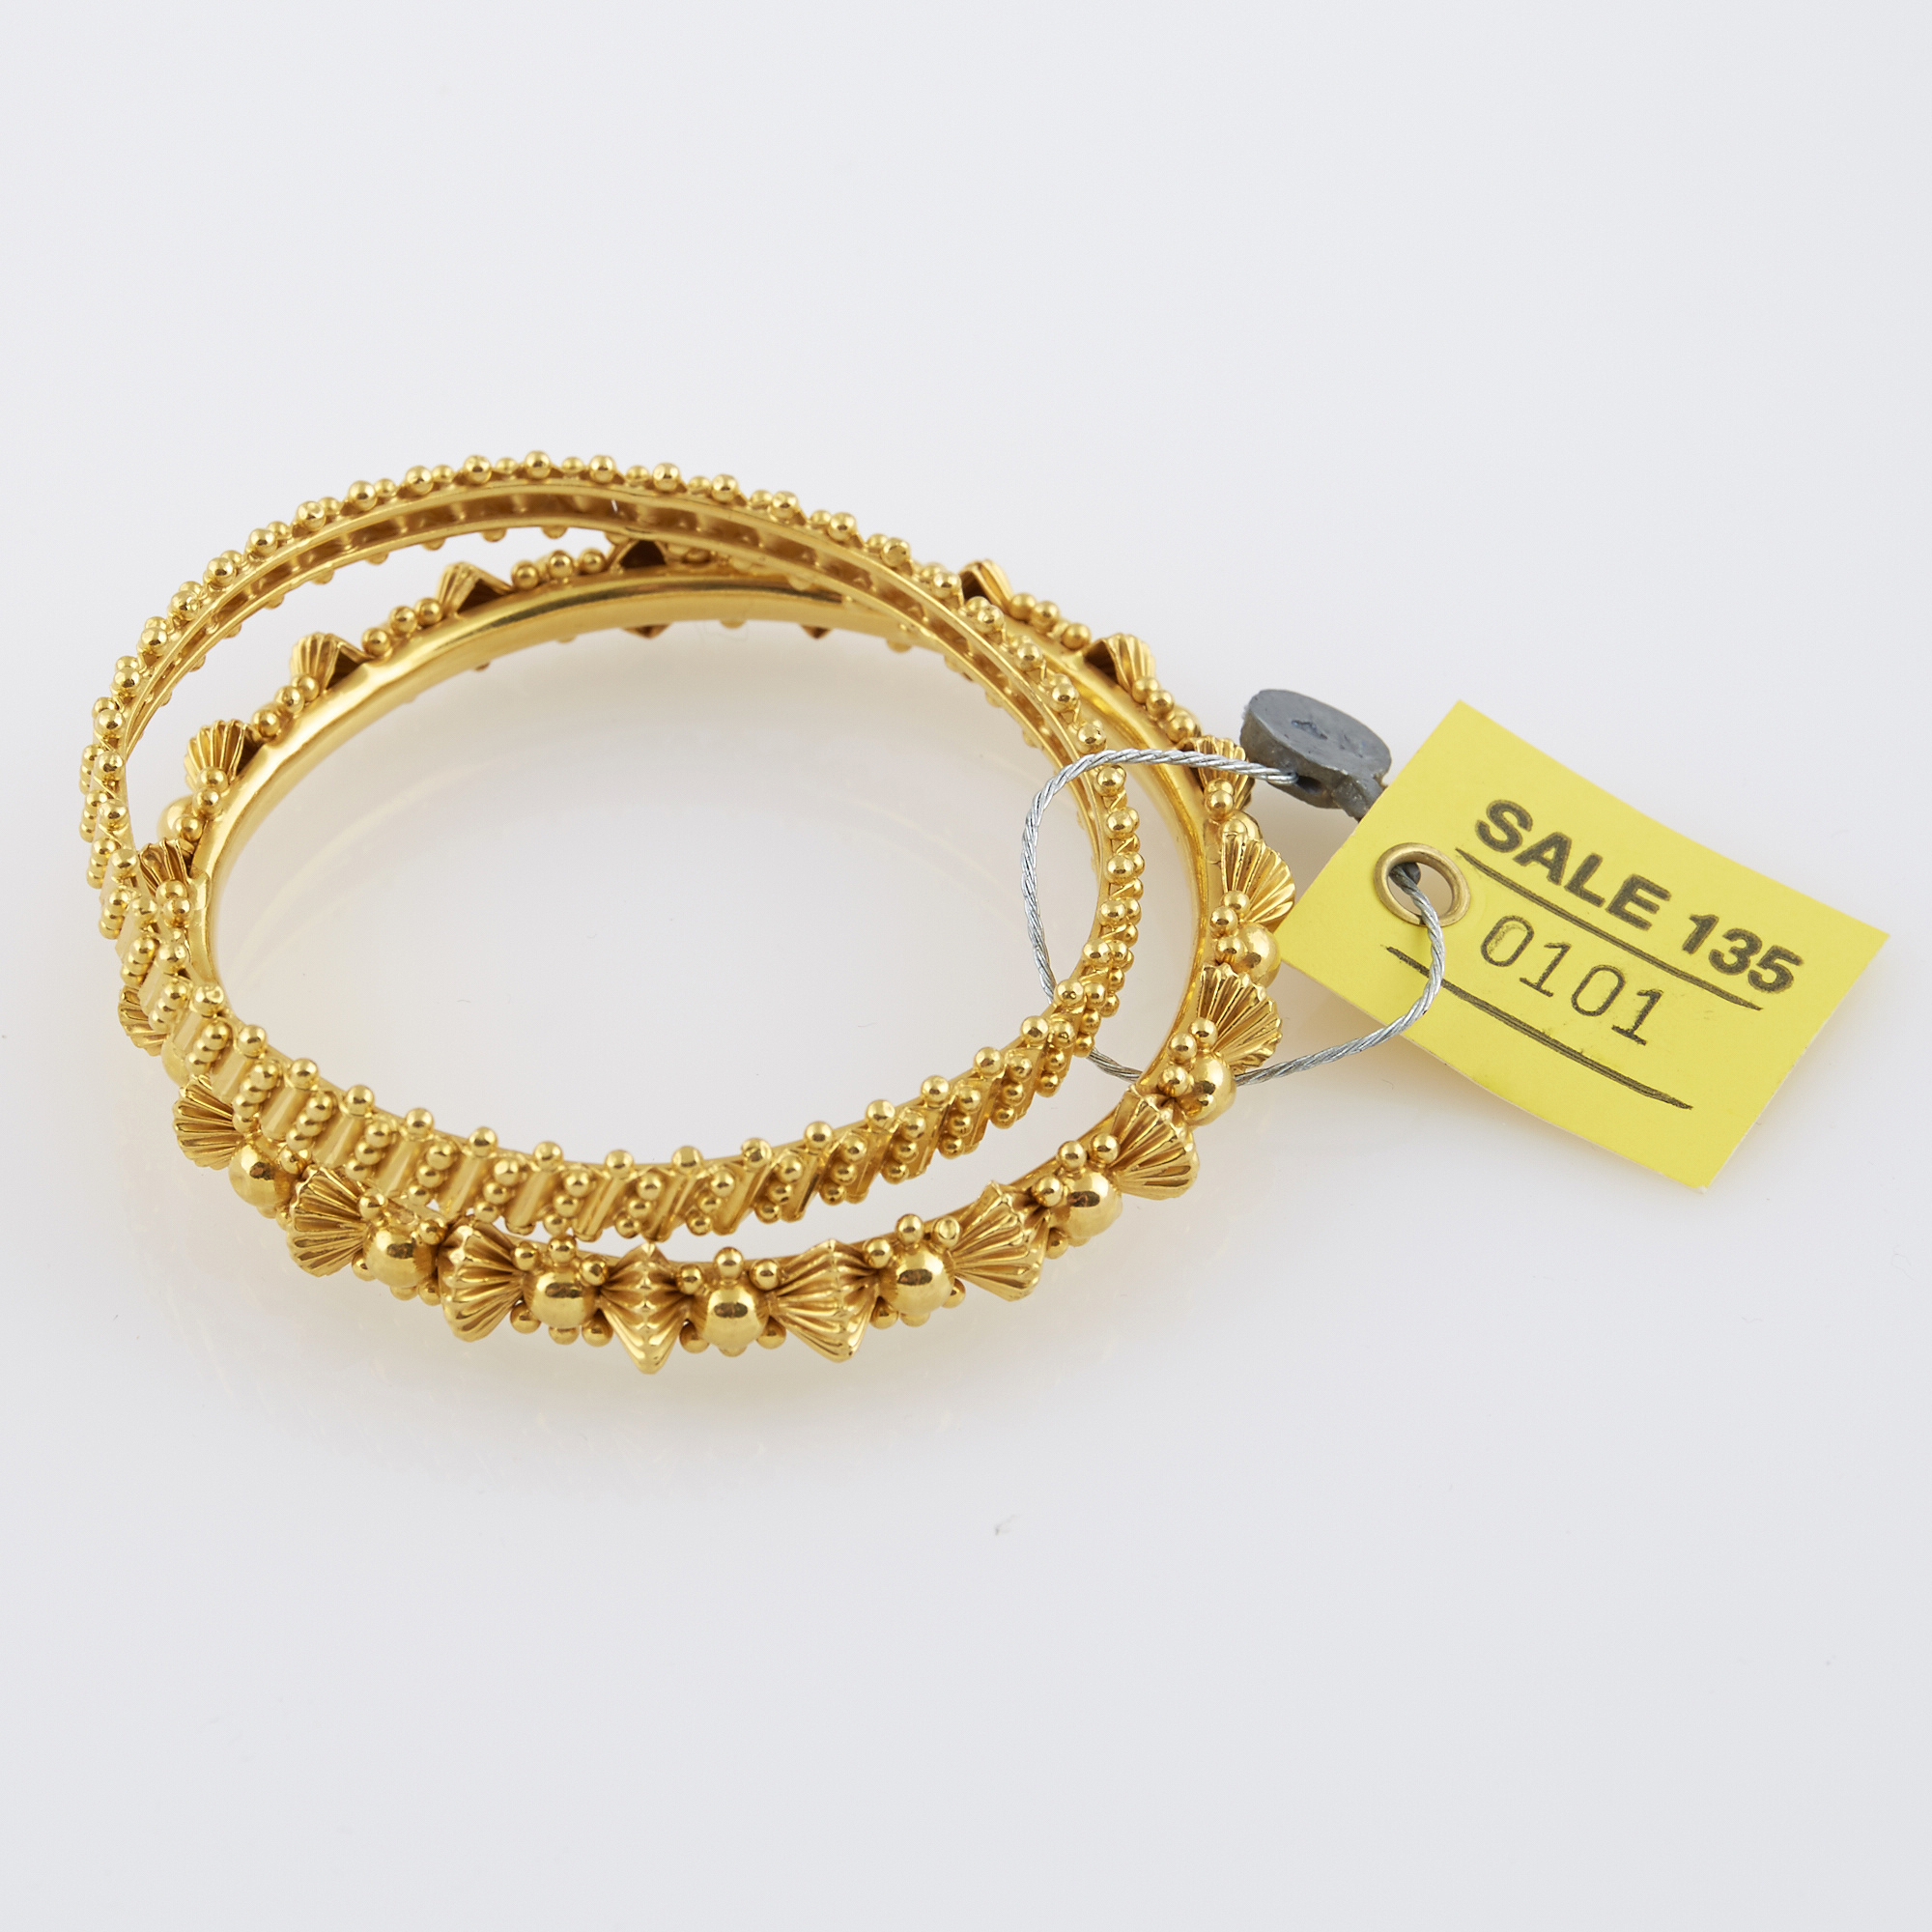 Lot image - Two Gold Rigid Bracelets, 22K 21 dwt.